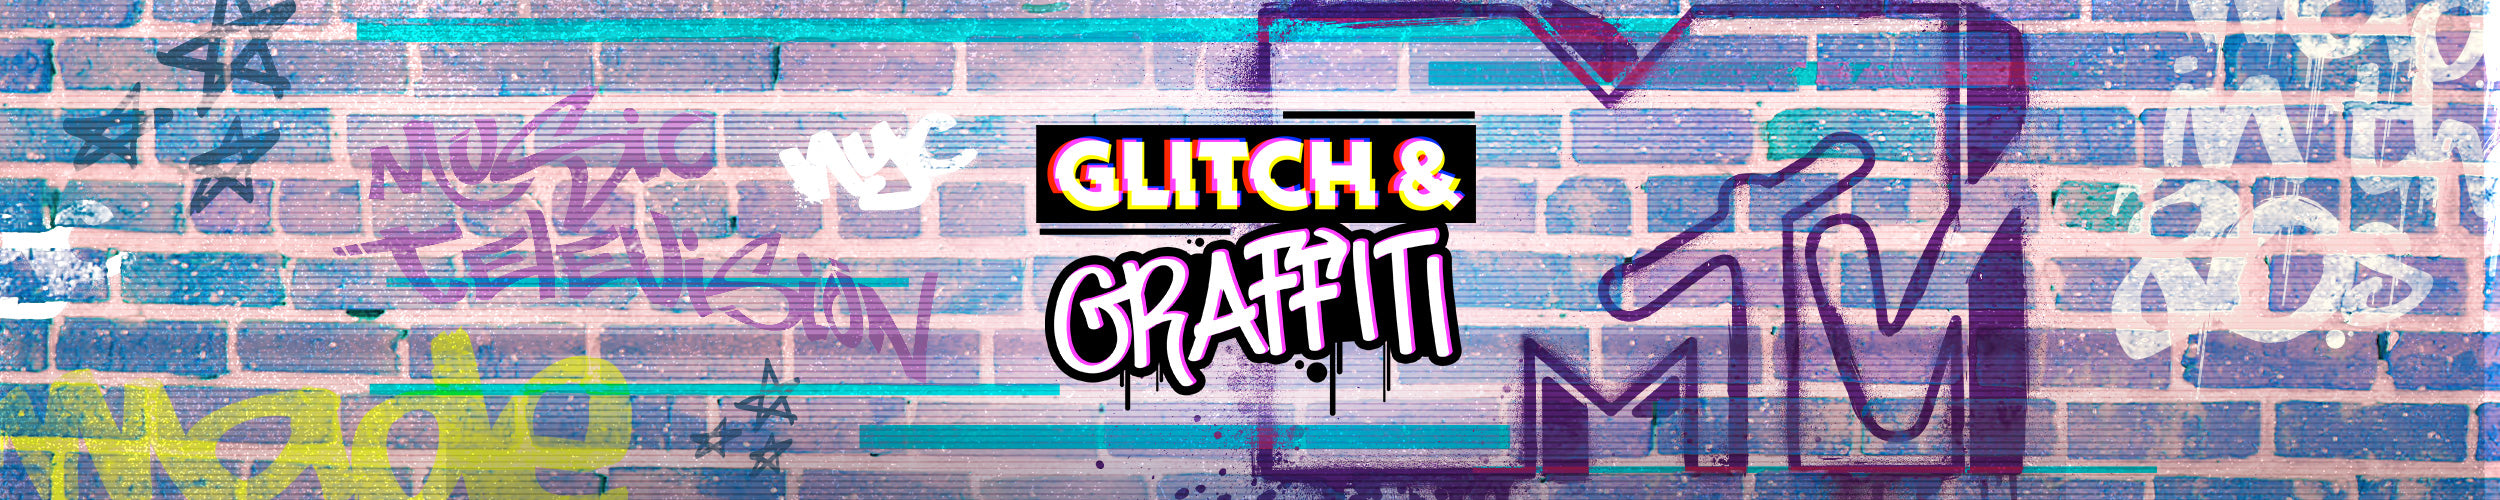 MTV Glitch & Graffiti